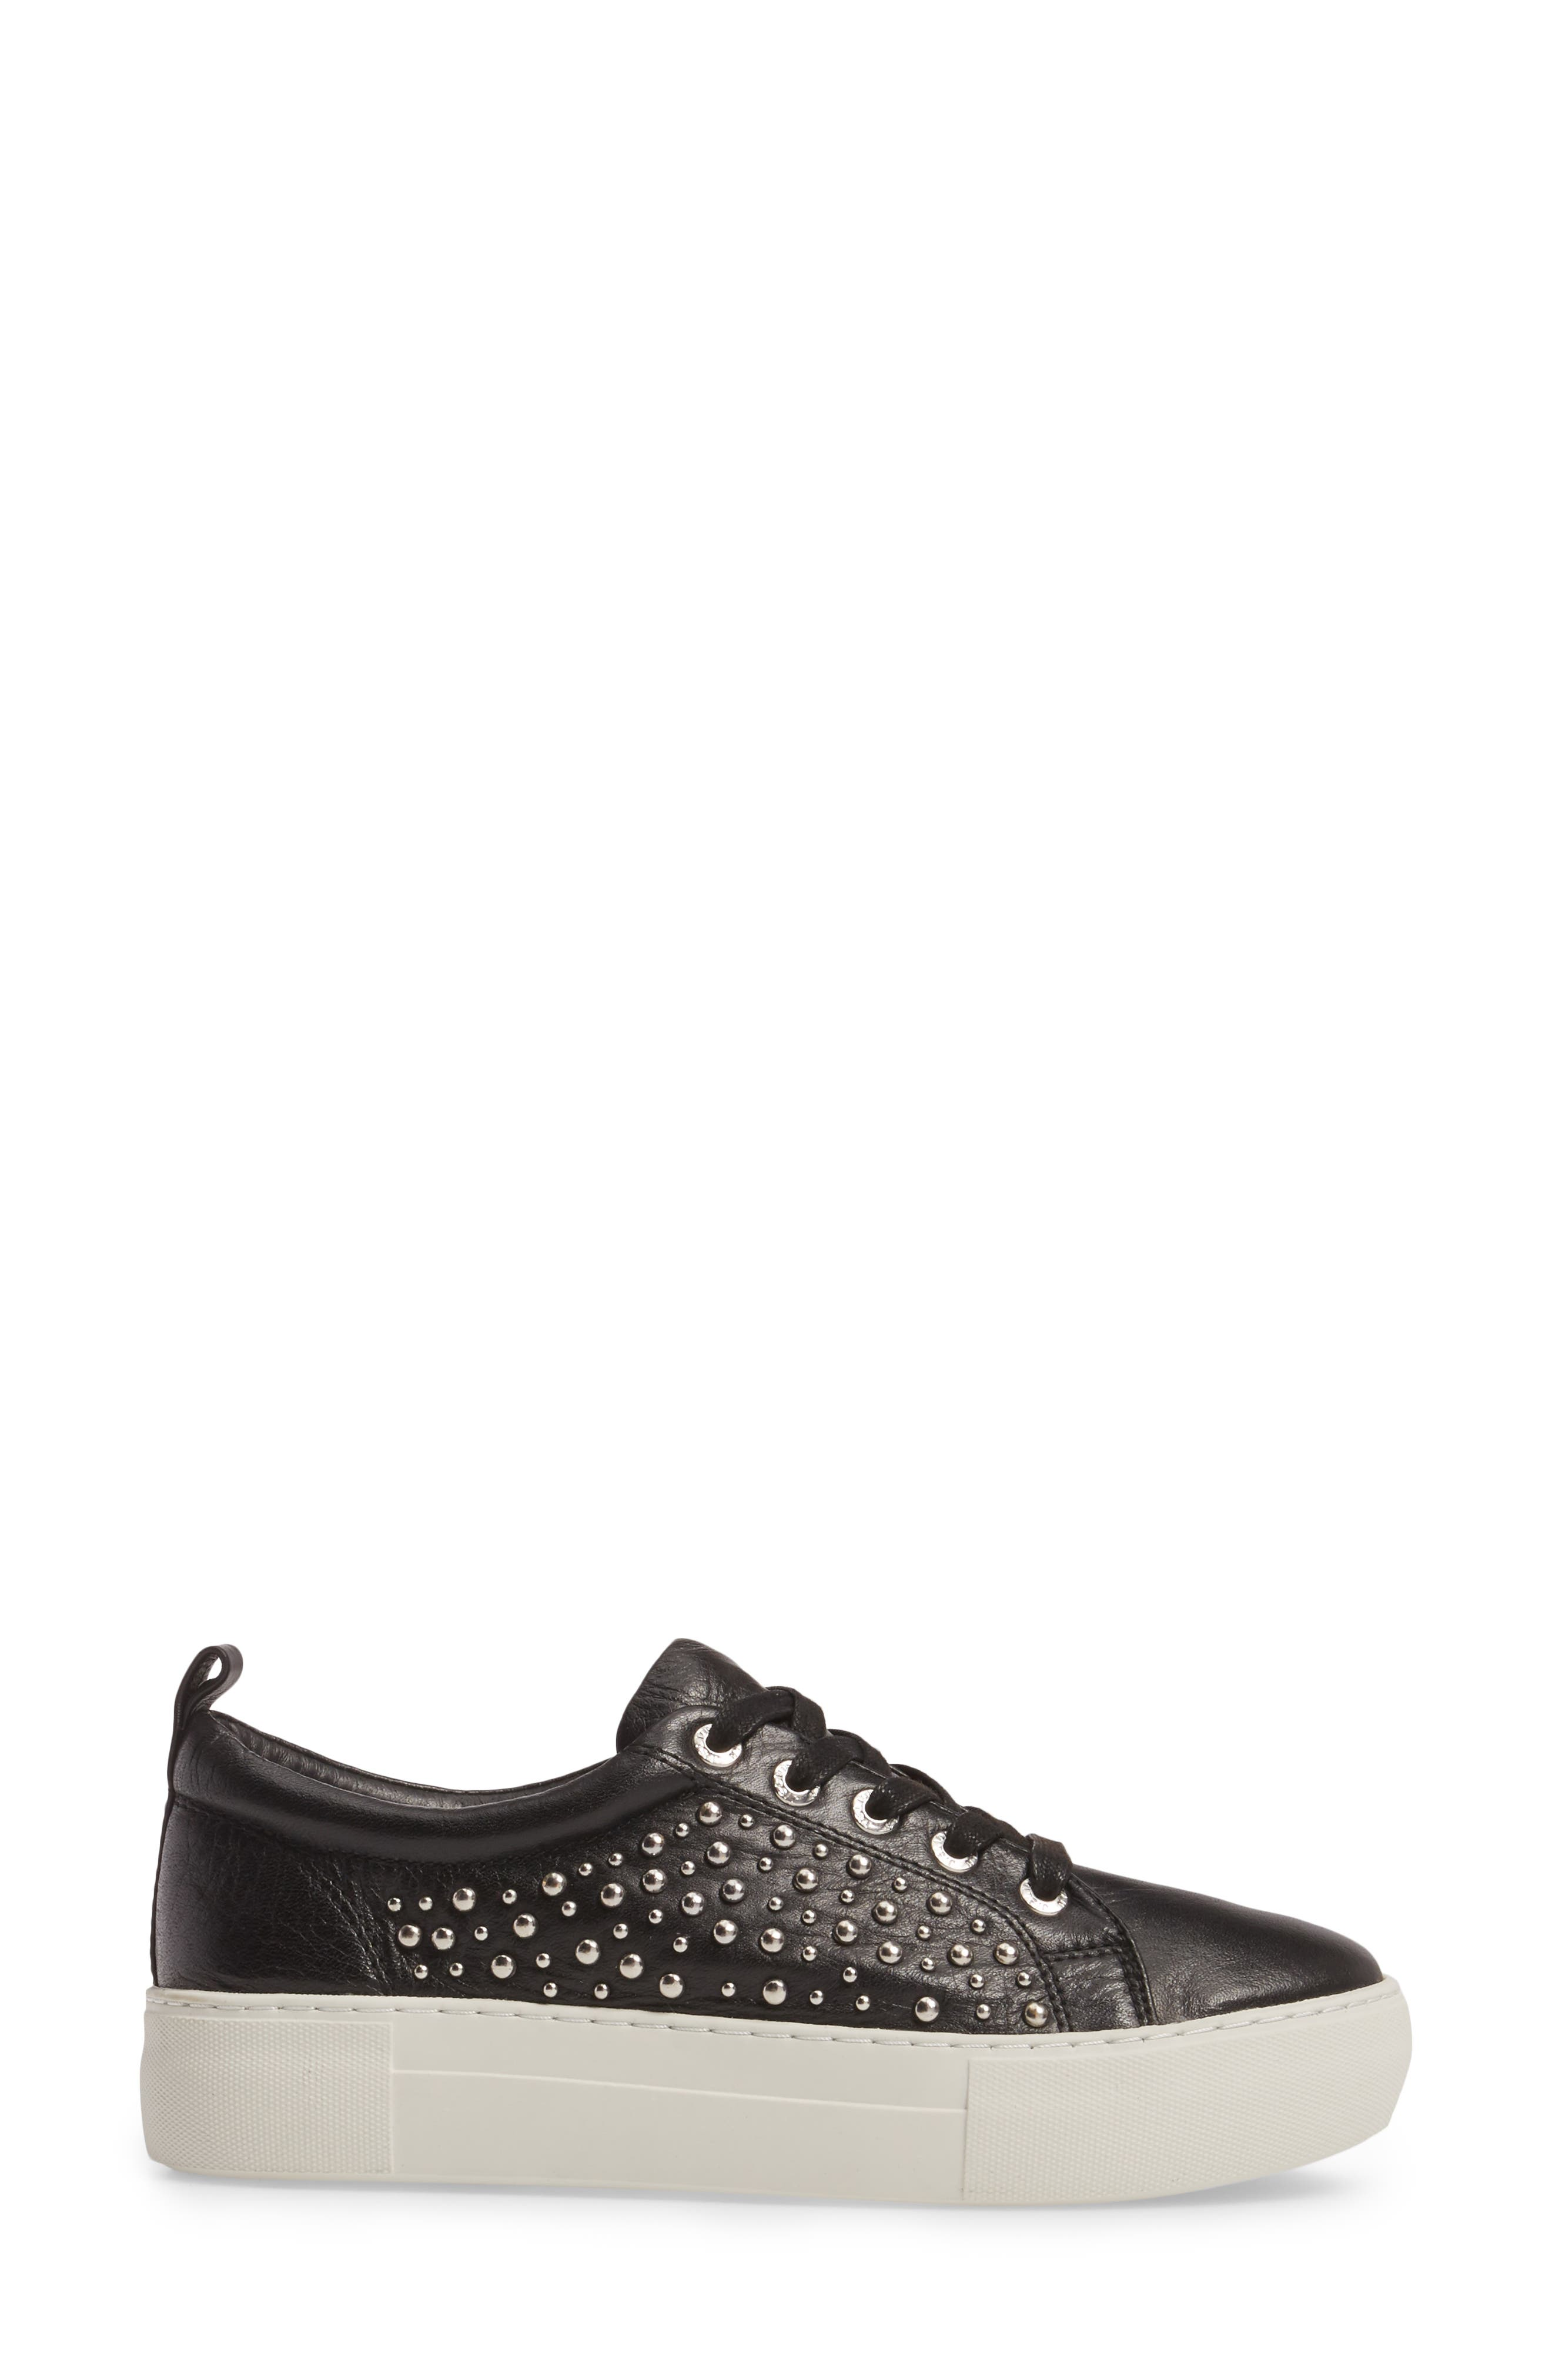 Ambrosia Studded Lace-Up Sneaker,                             Alternate thumbnail 3, color,                             Black Leather